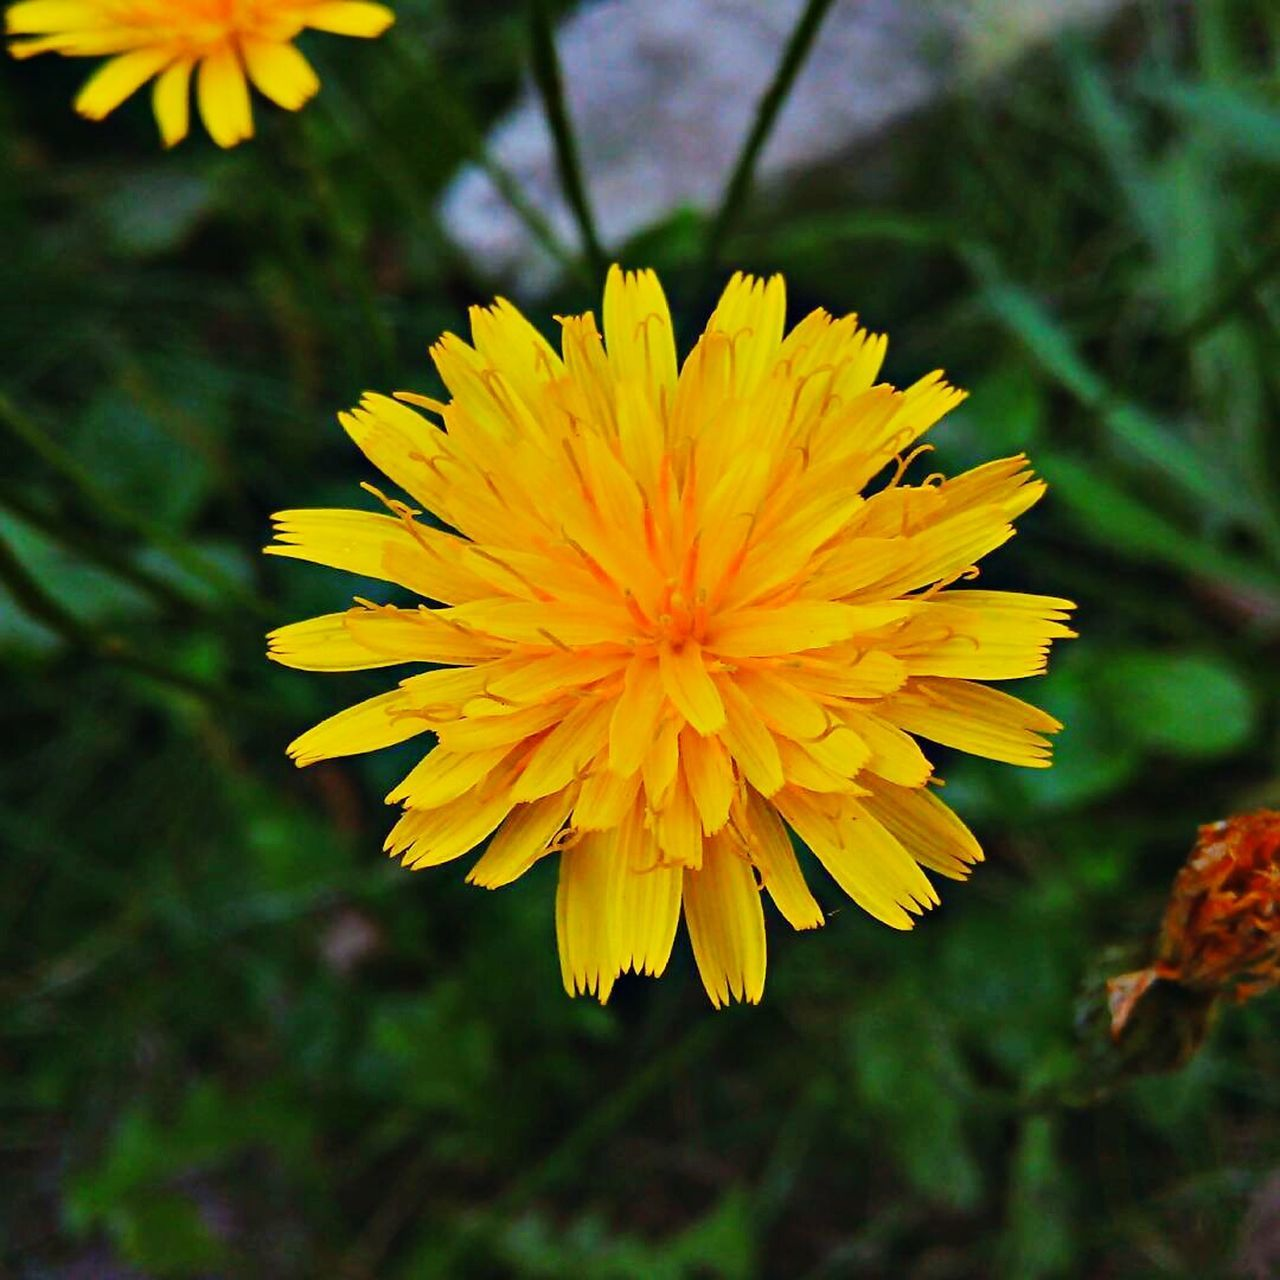 flower, yellow, fragility, petal, beauty in nature, nature, freshness, flower head, growth, plant, close-up, focus on foreground, no people, outdoors, day, blooming, springtime